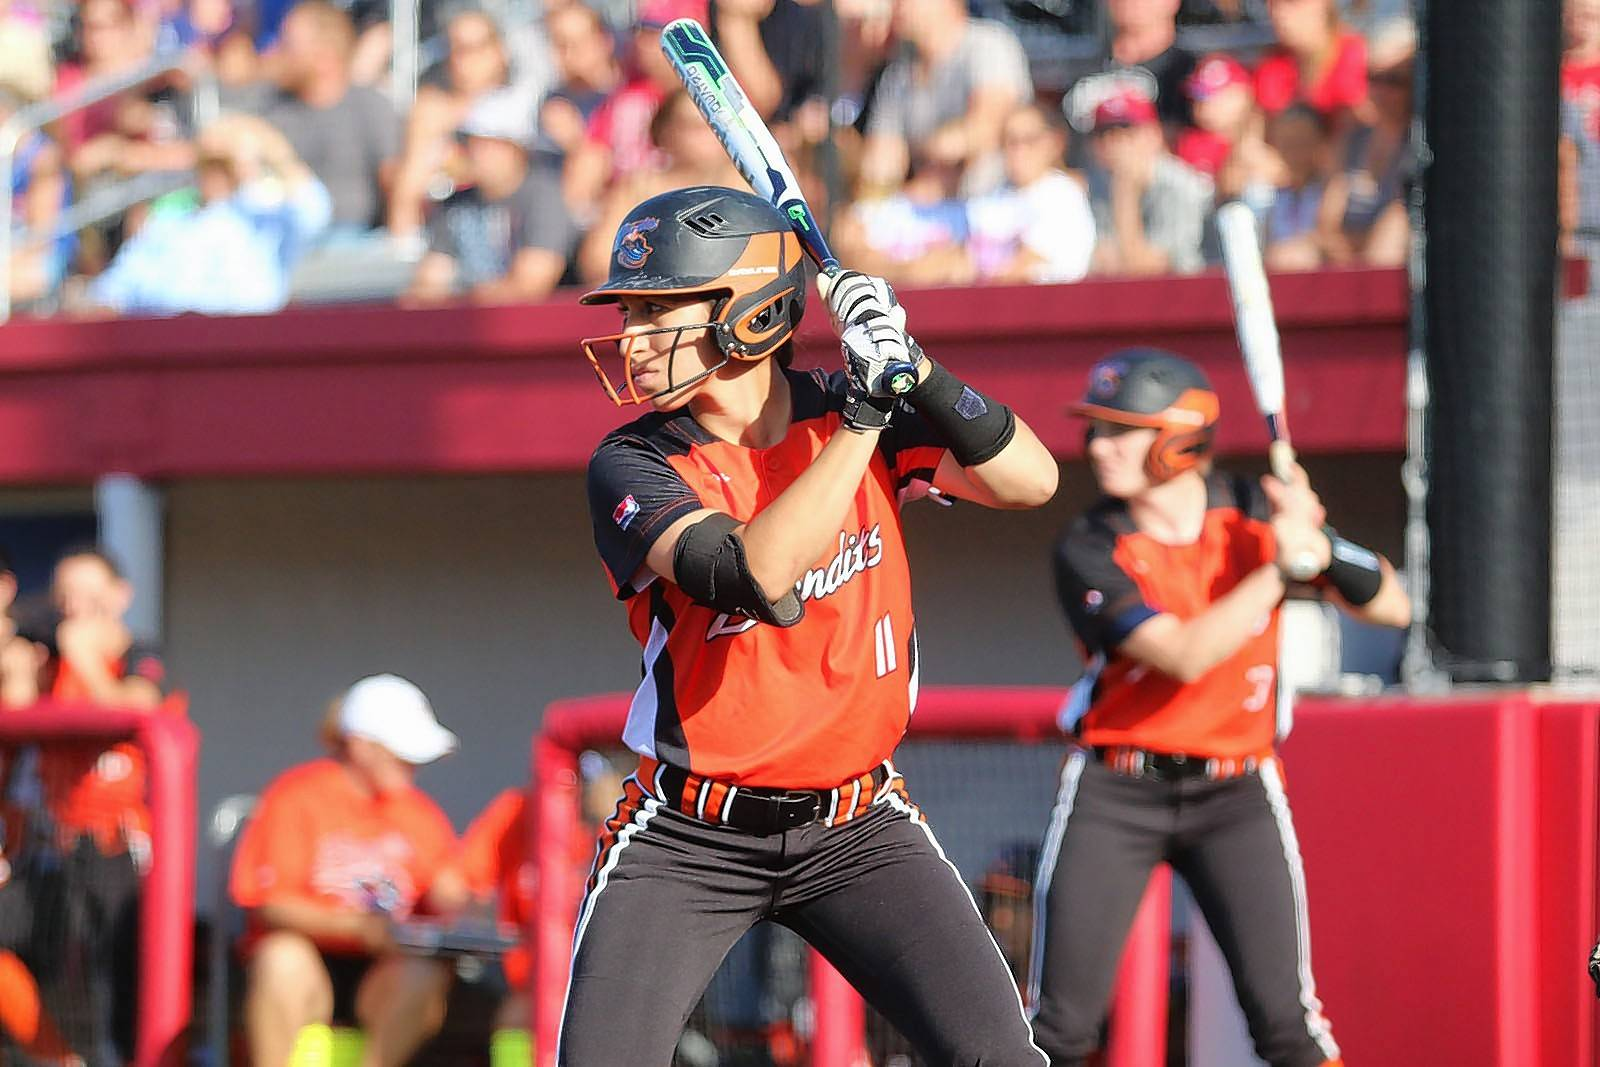 Chicago Bandits shortstop Abby Ramirez has signed a one-year contract to return for the 2018 NPF season.